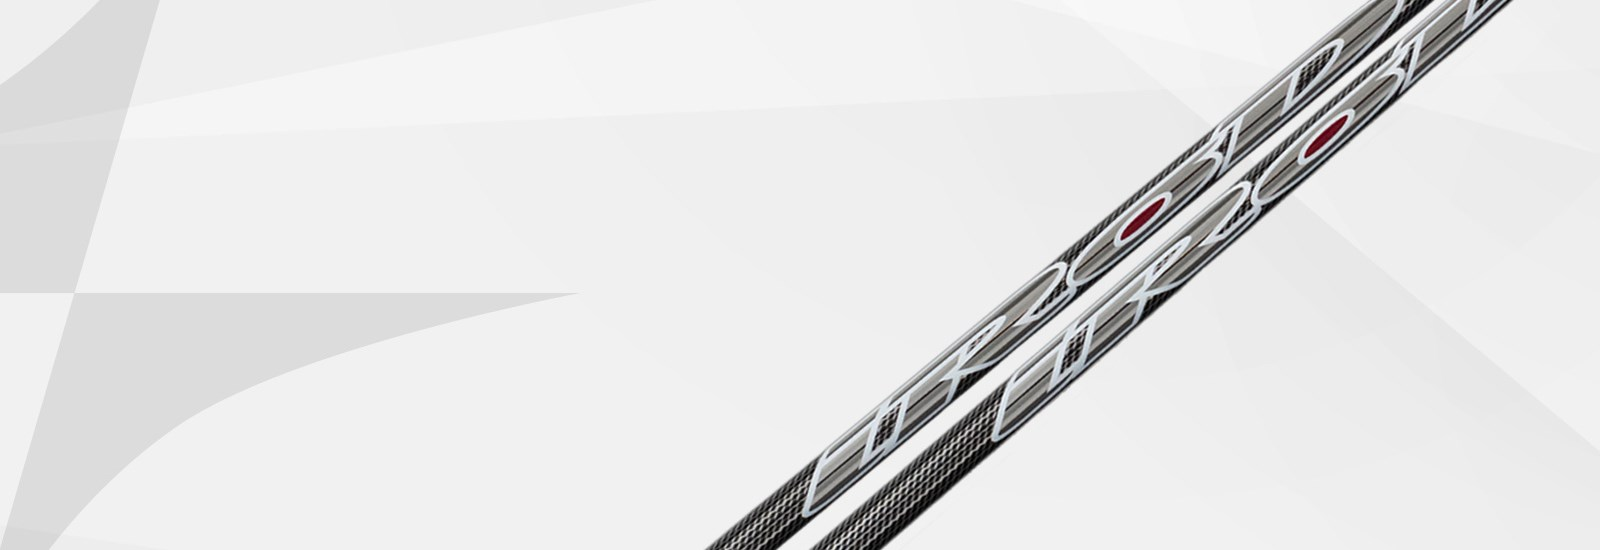 UST Mamiya iRoD Golf Shafts